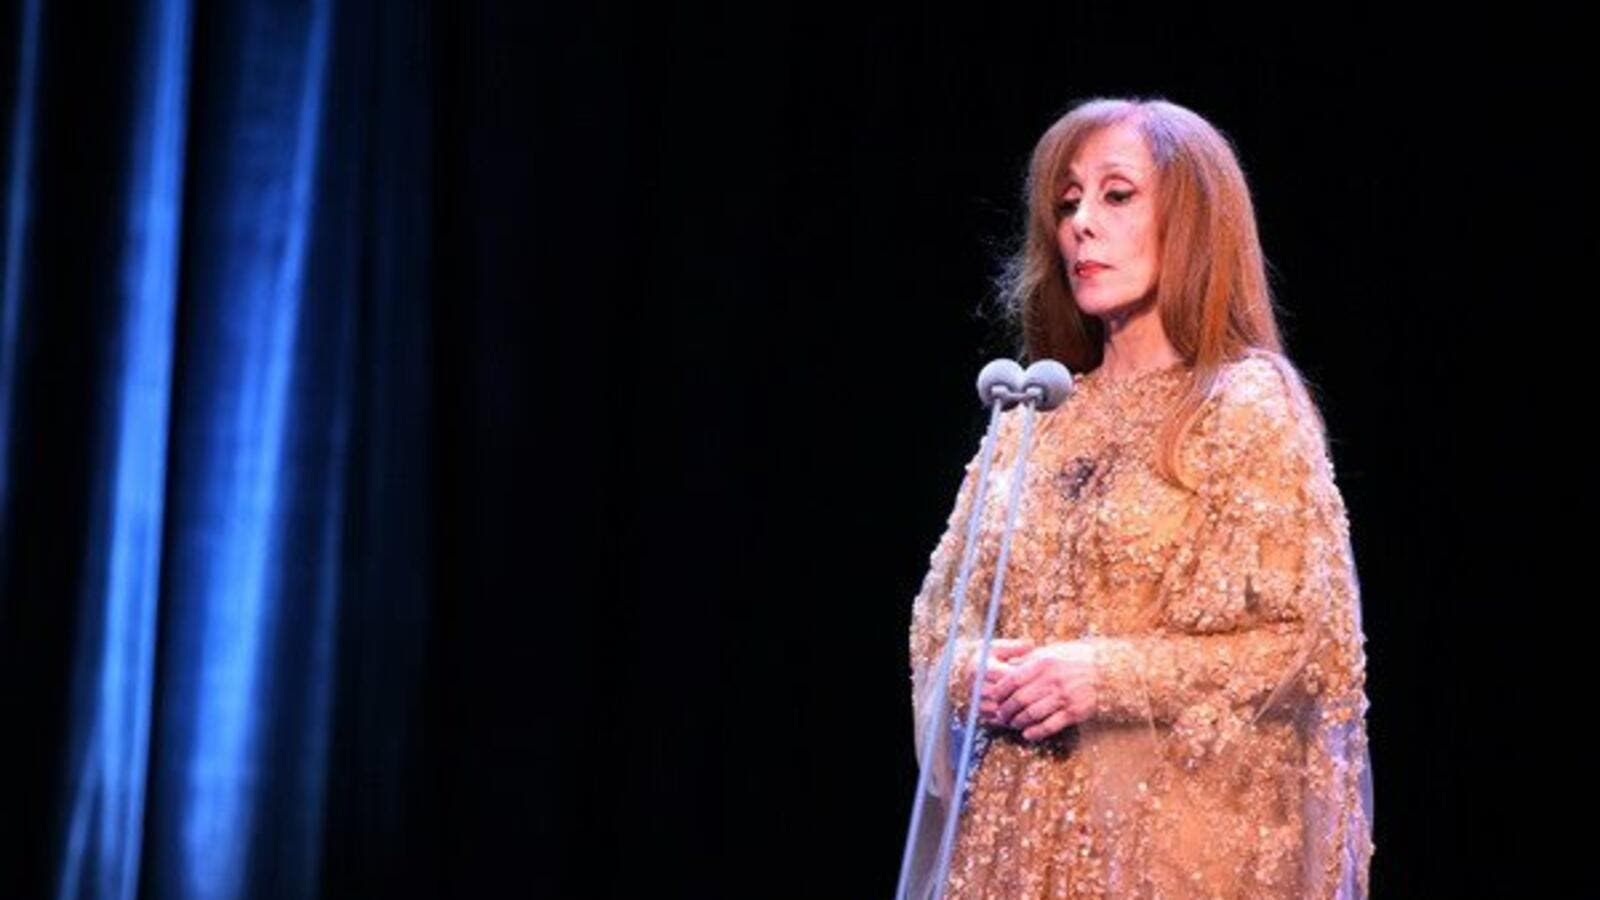 In the Arab world, Fairouz is known as 'Our Ambassador to the Stars.' (Facebook)